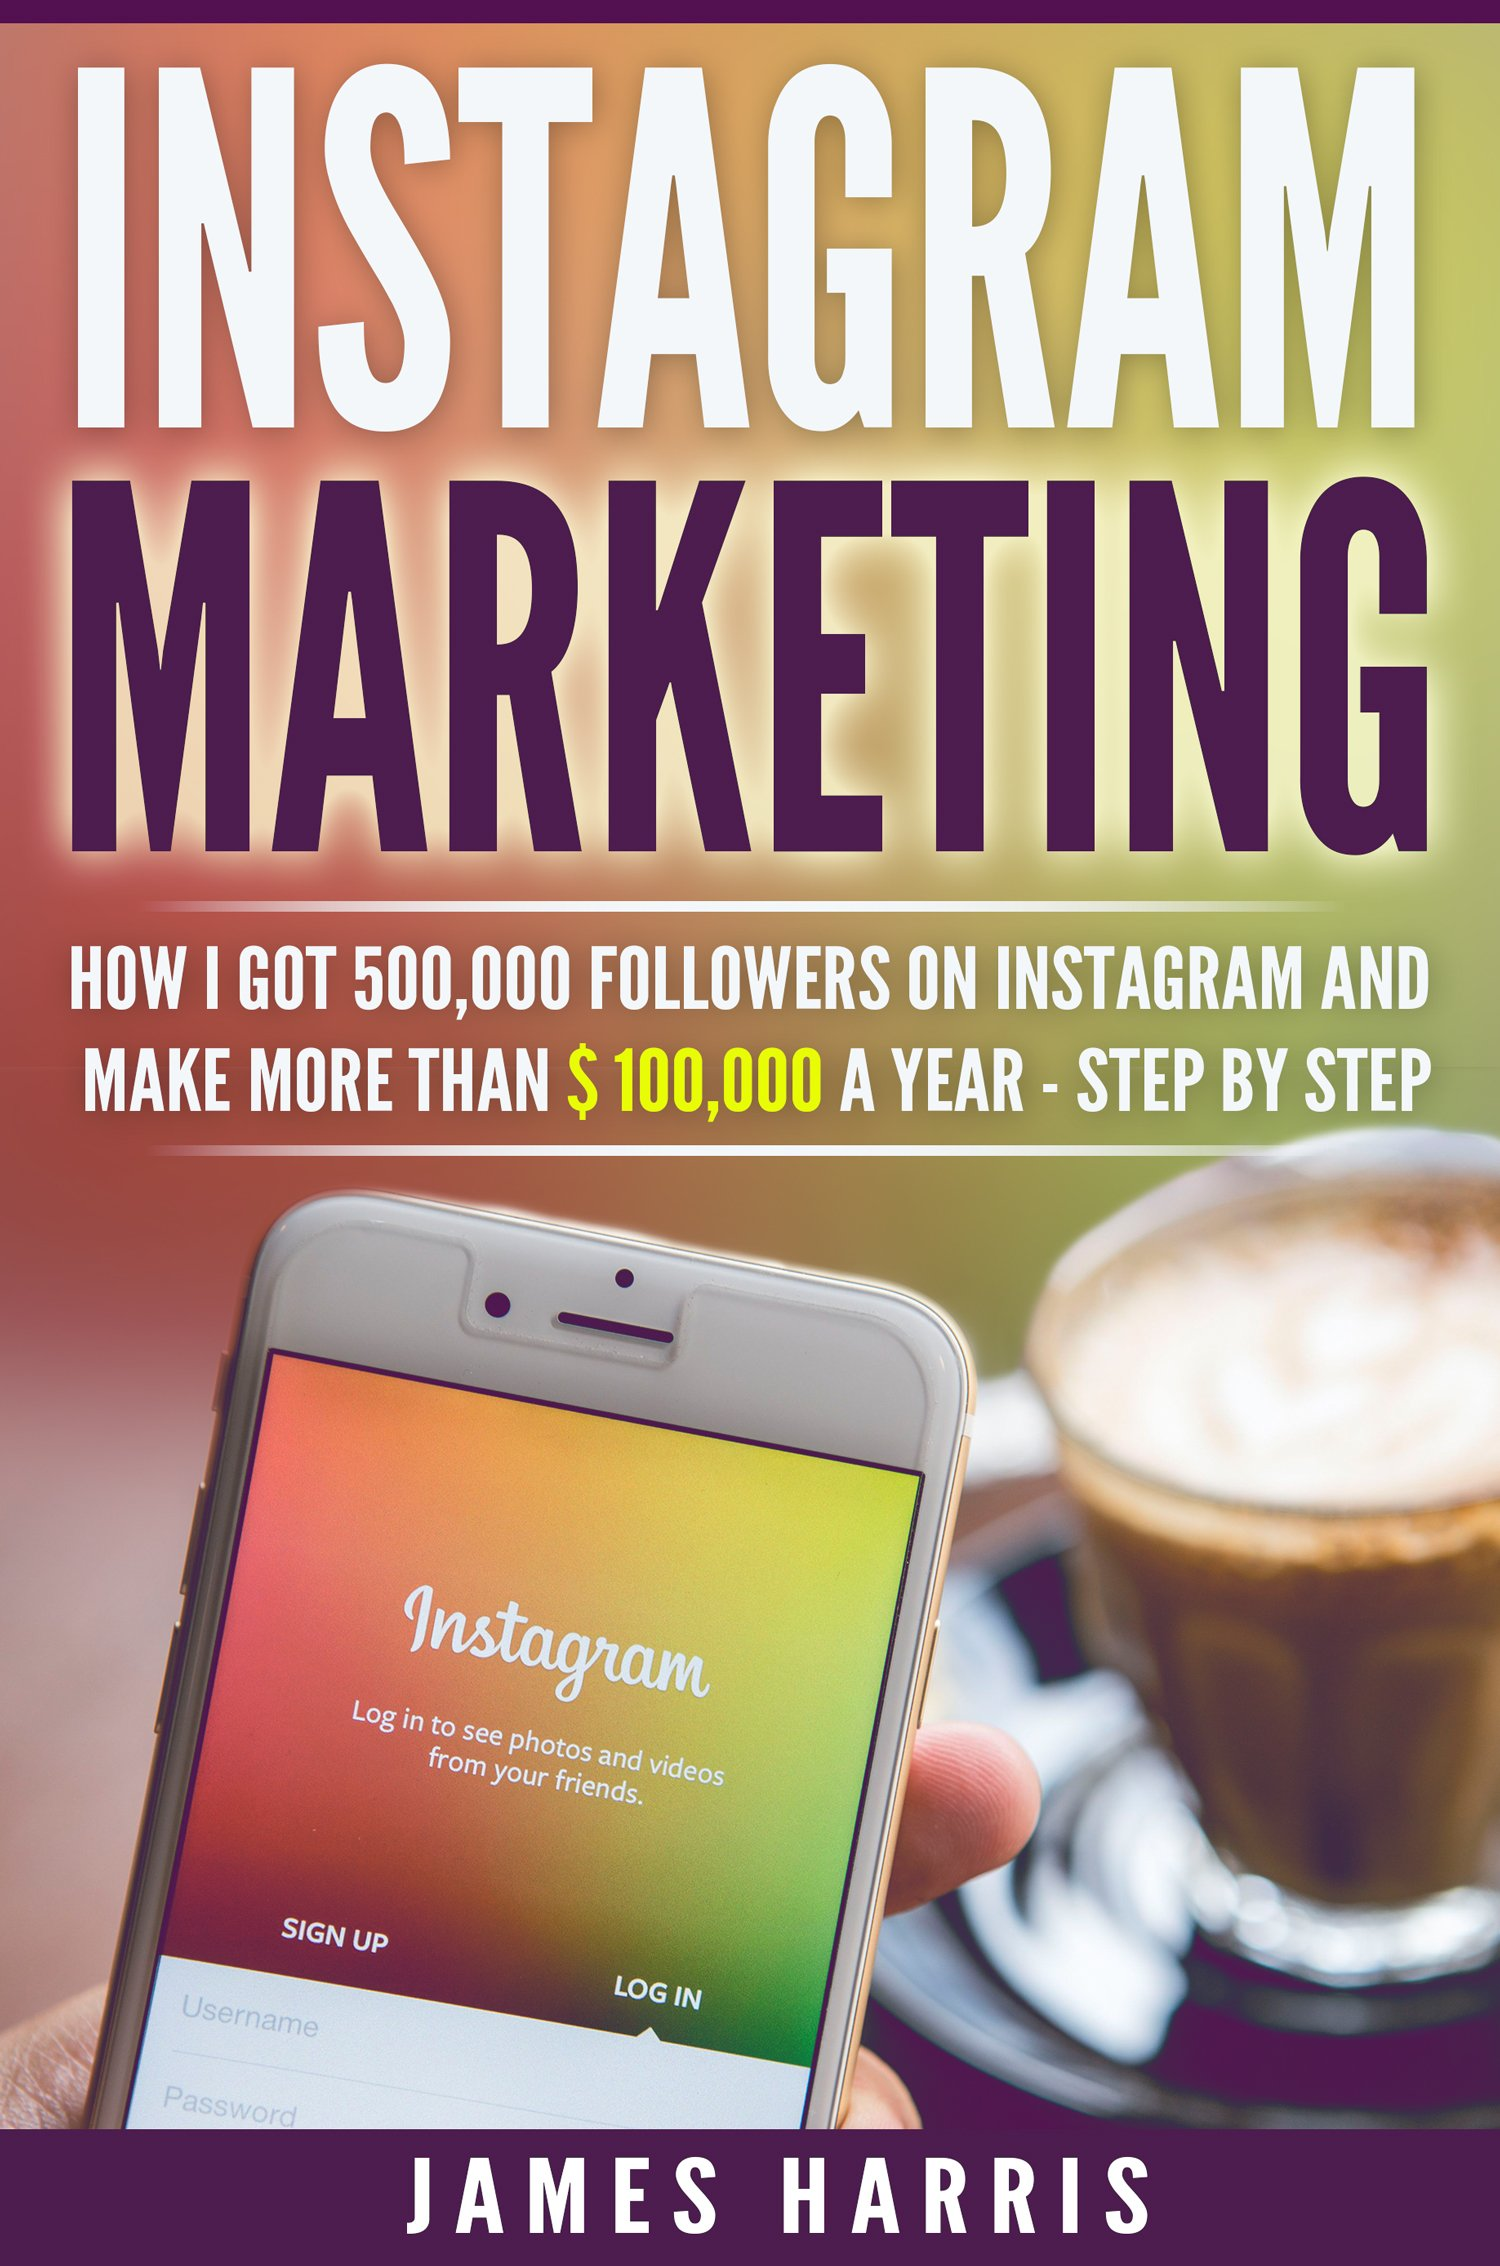 Instagram Marketing  How I Got 500000 Followers On Instagram And Make More Than $ 100000 A Year   Step By Step  English Edition